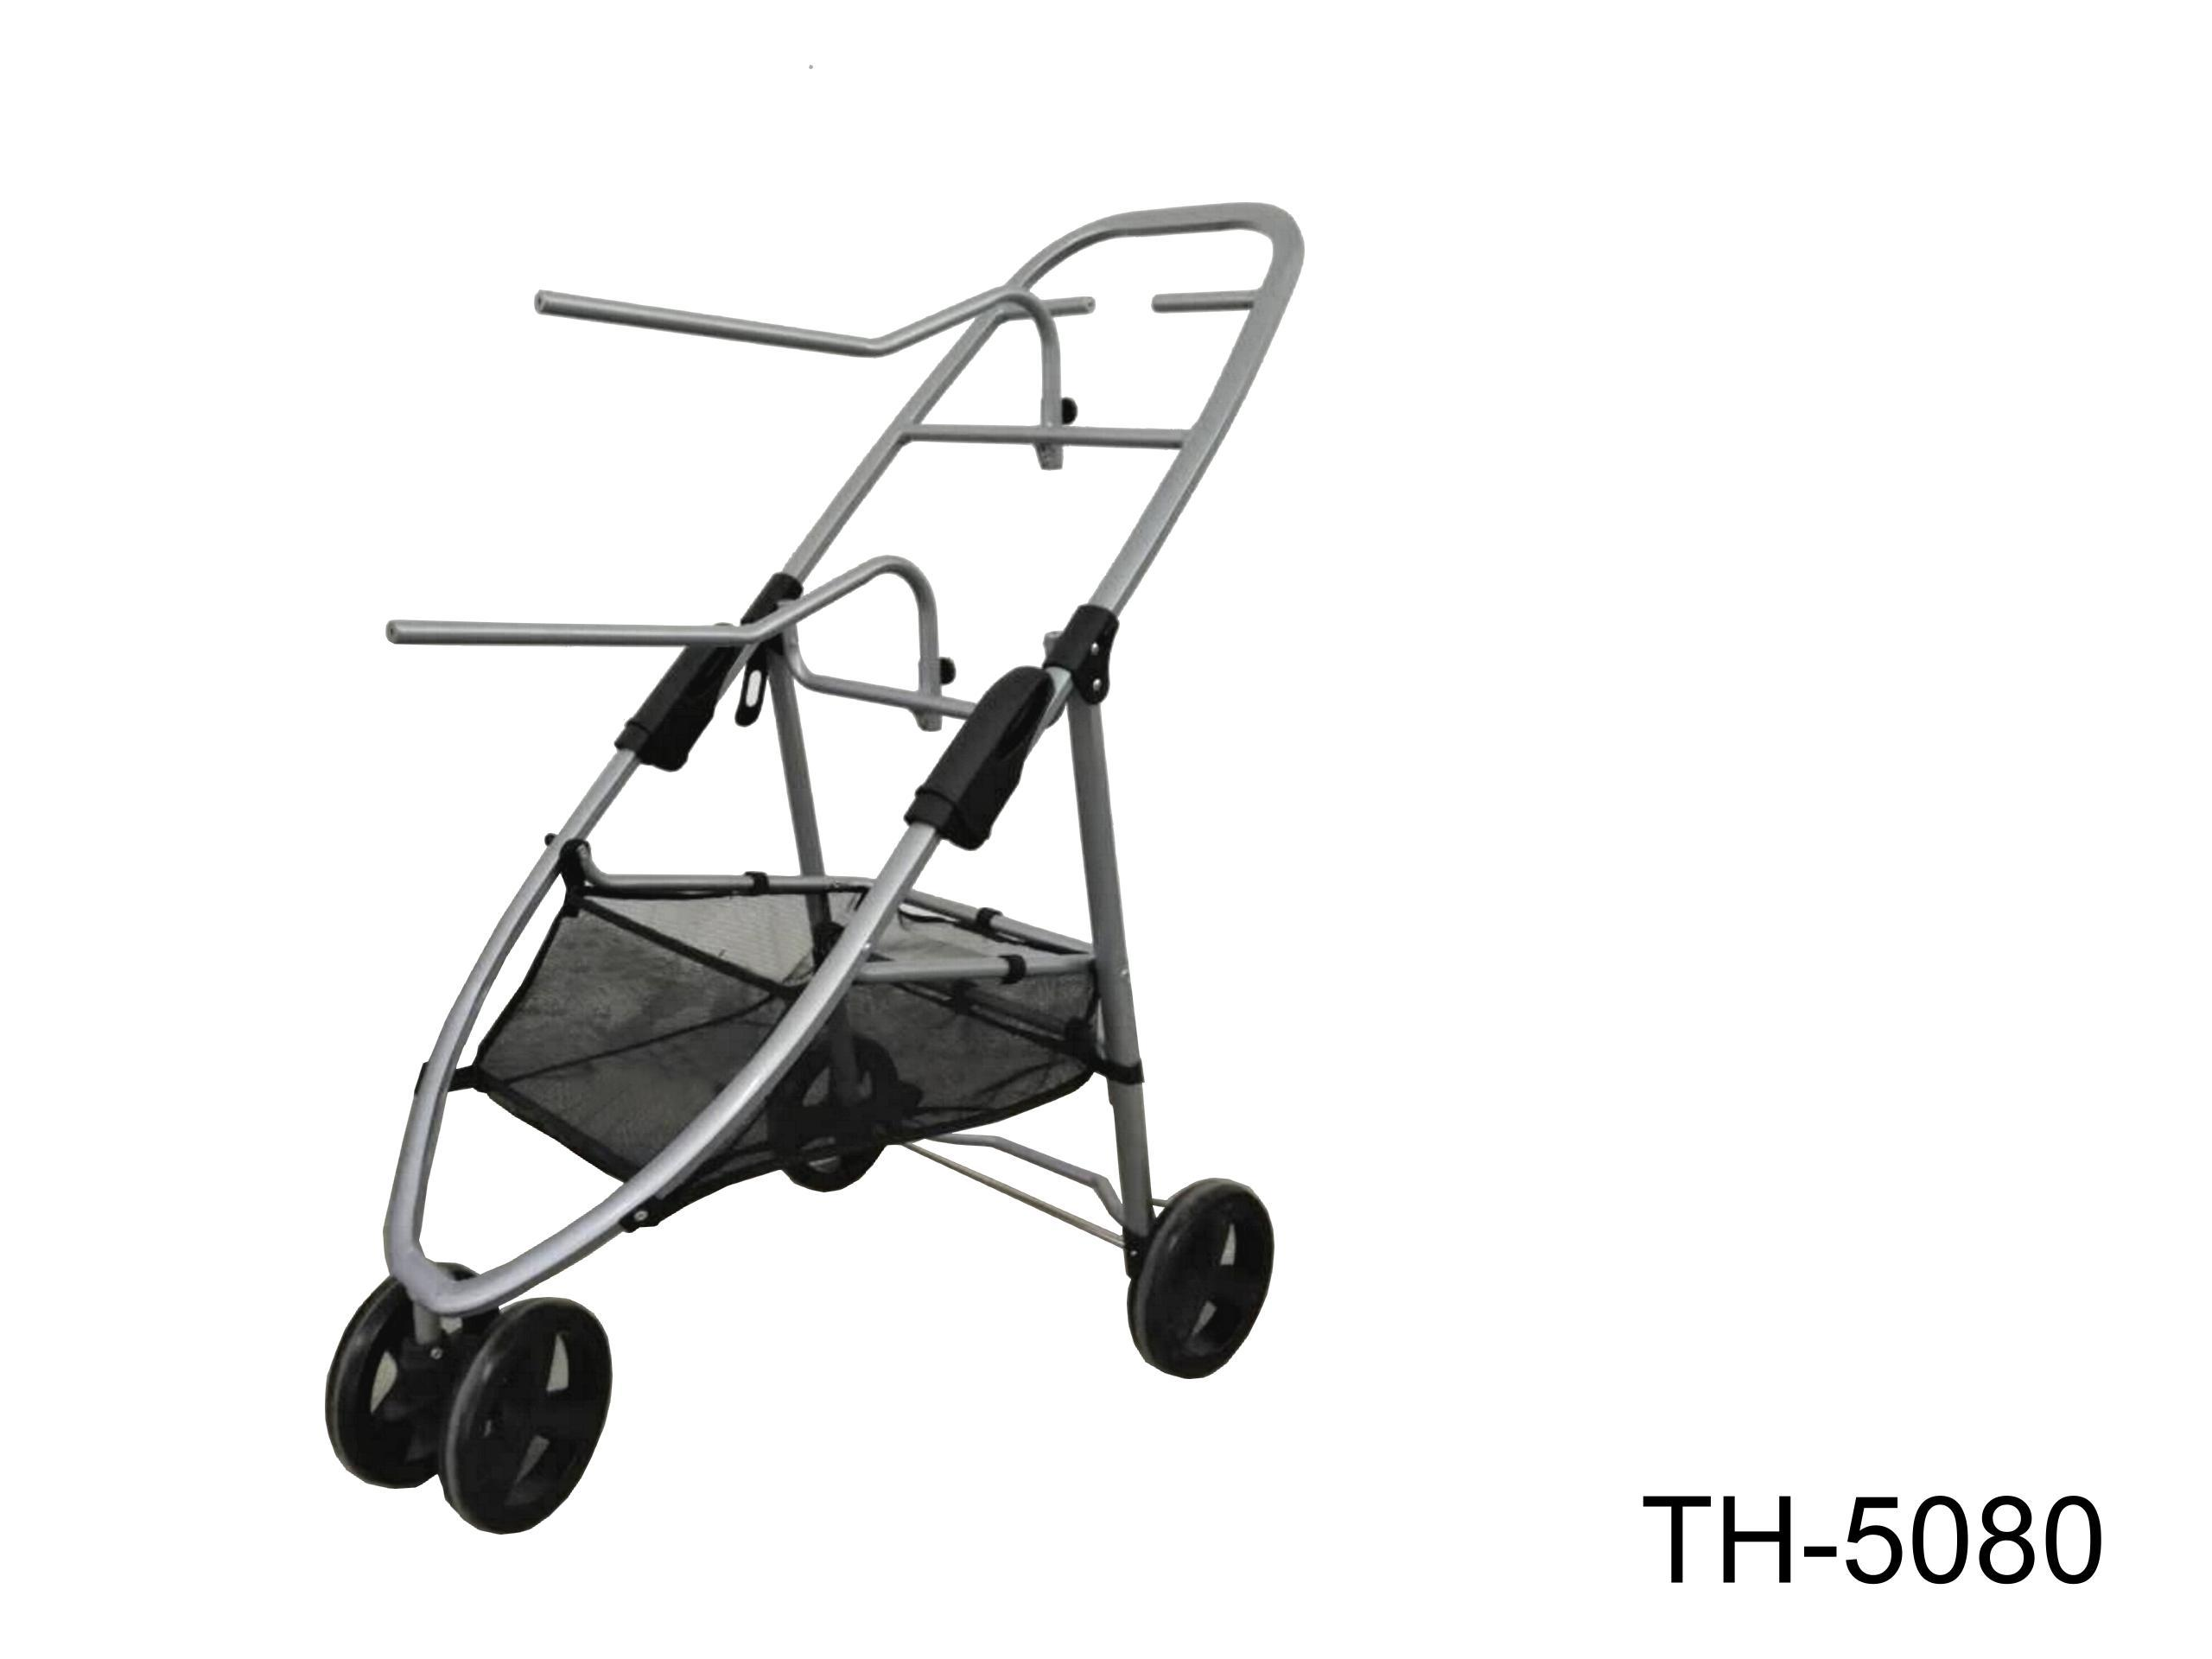 THREE WHEELS FOLDING SADDLE TROLLEY